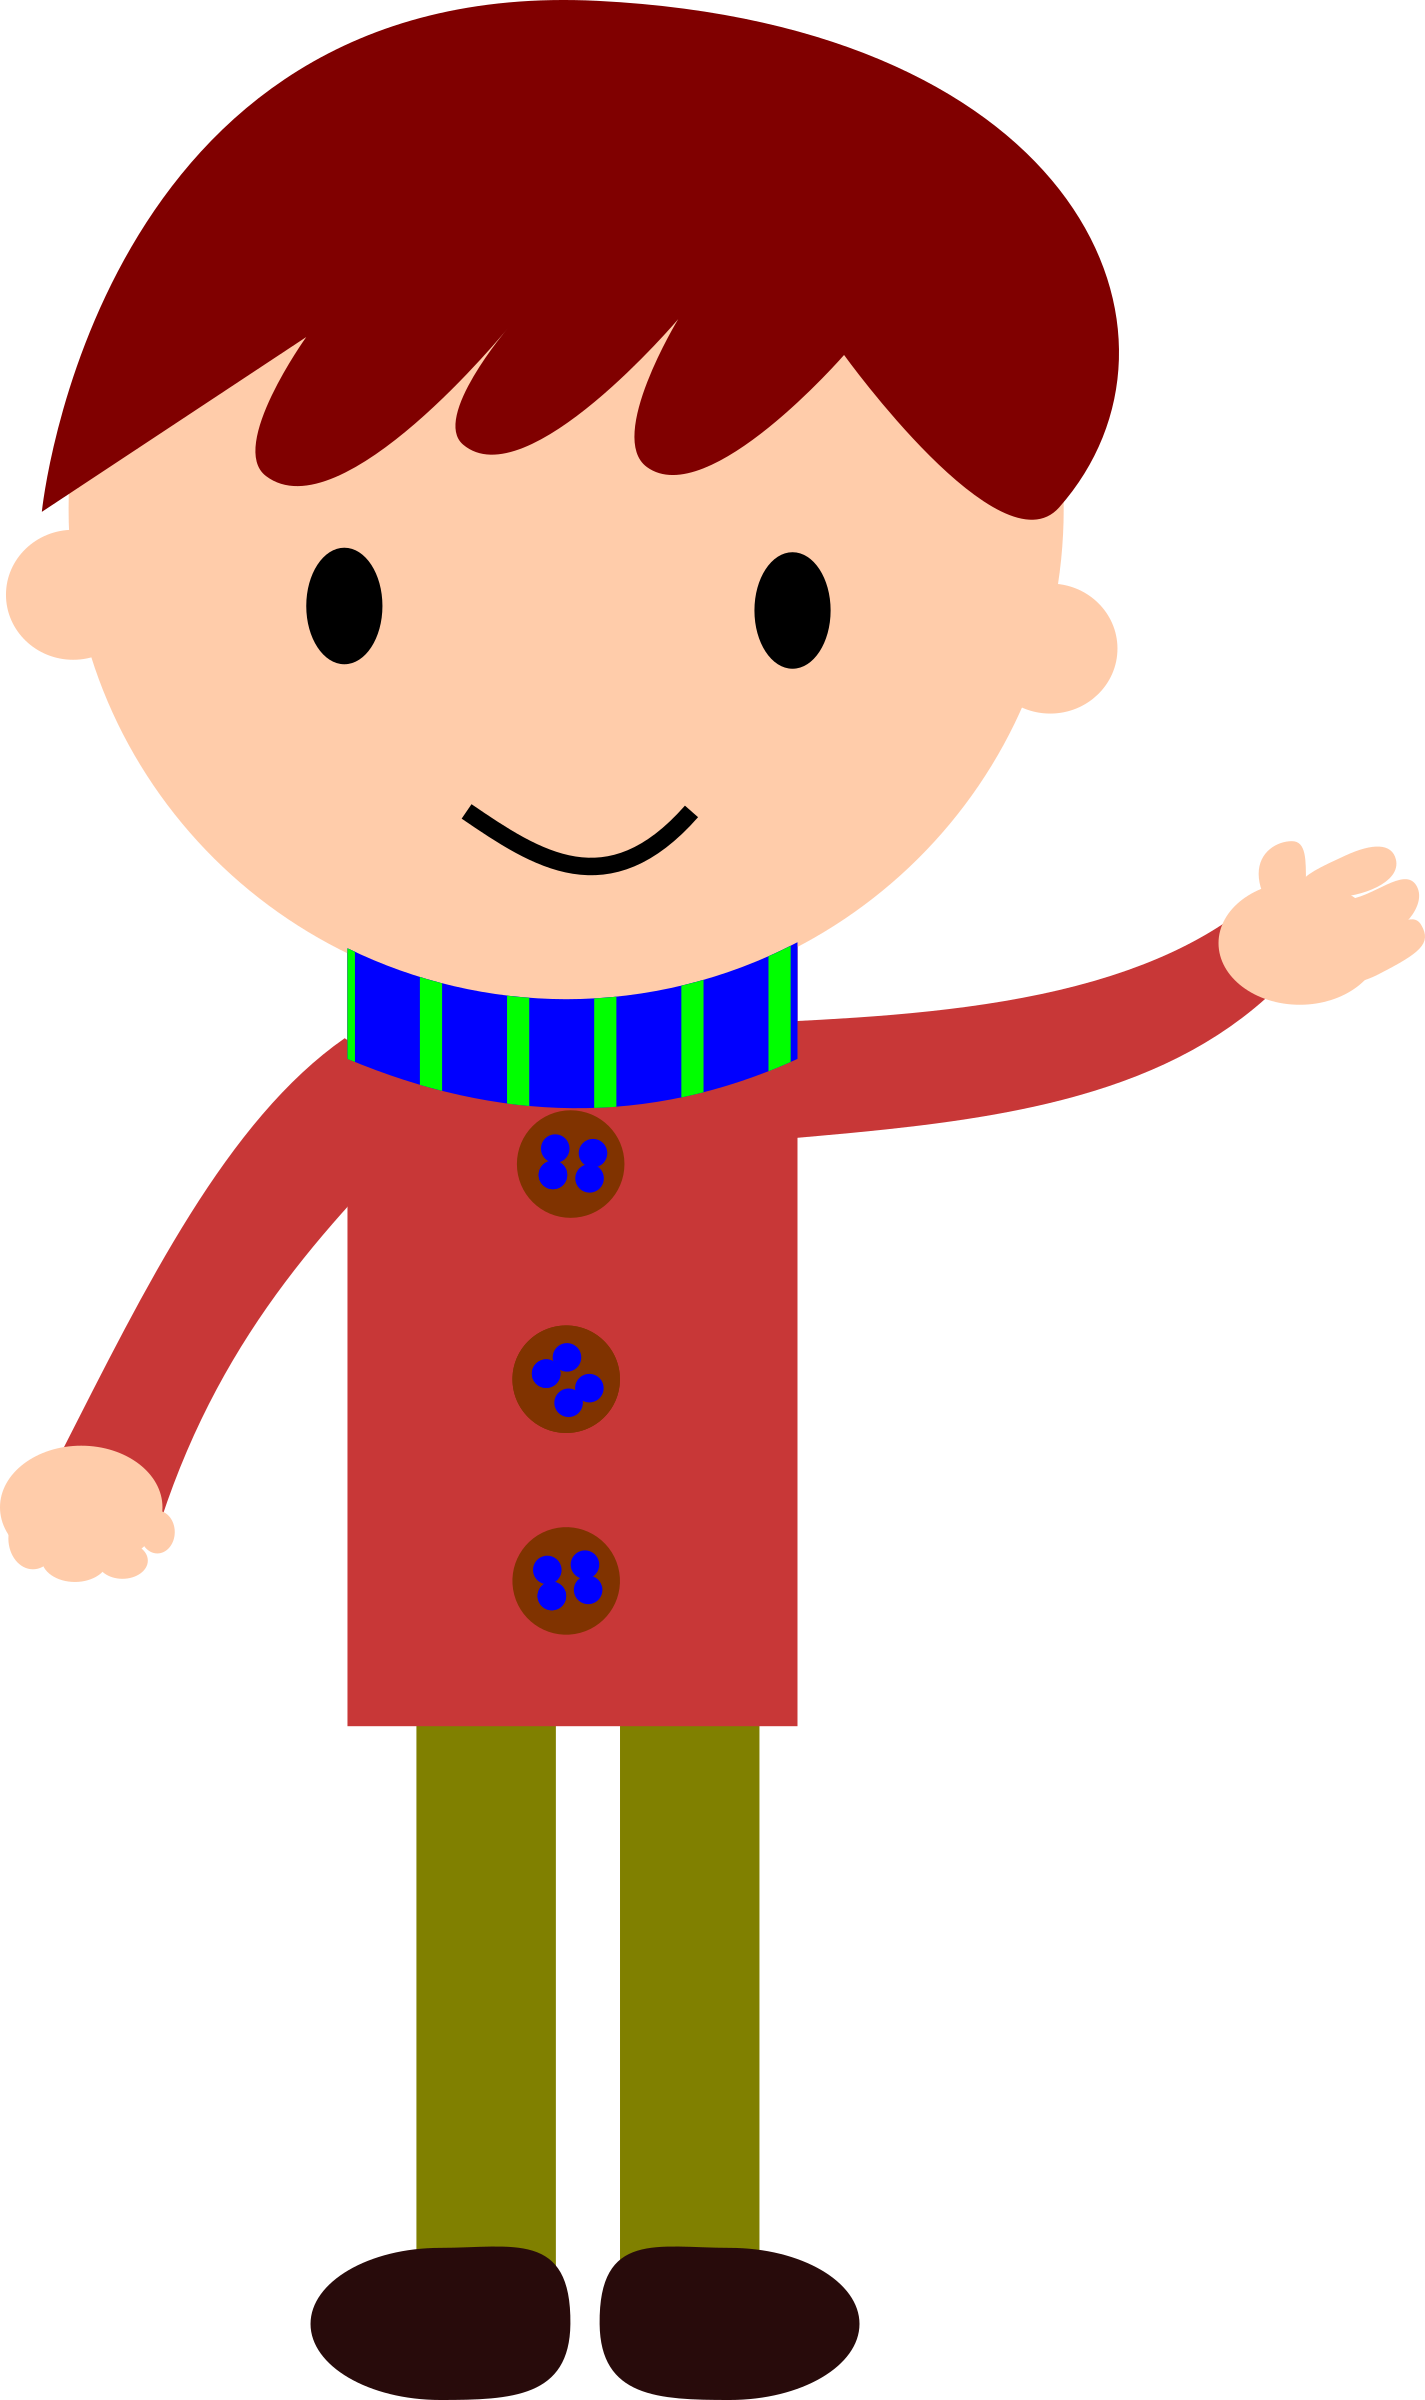 Delivery clipart kid. Waving group boy hand